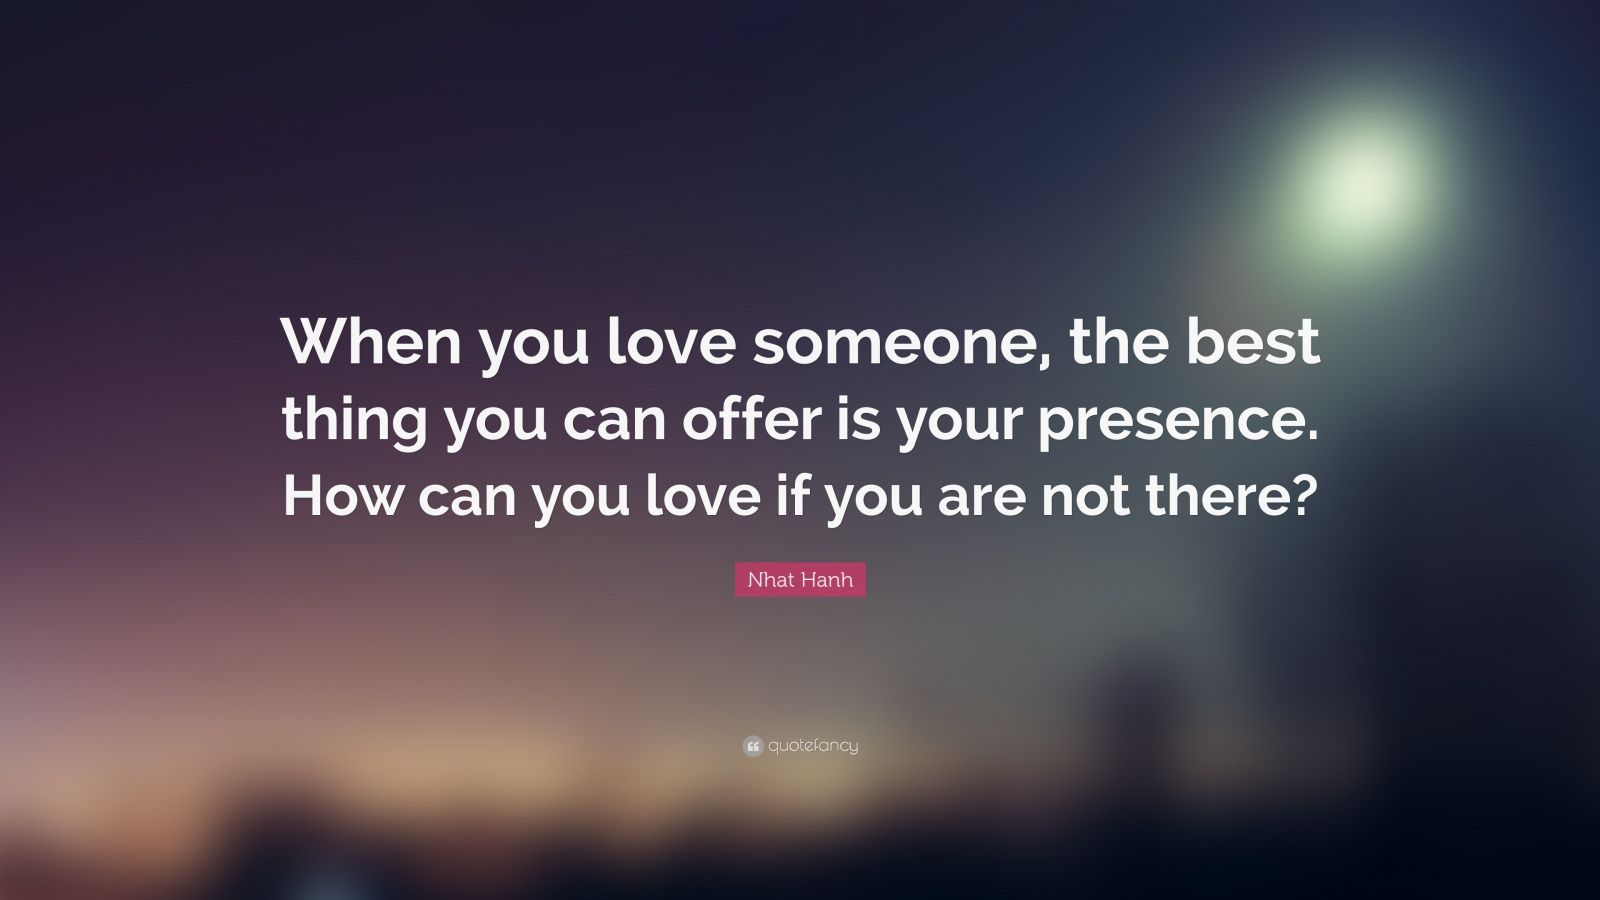 """Nhat Hanh Quote: """"When you love someone, the best thing you can offer is your presence. How can you love if you are not there?"""""""